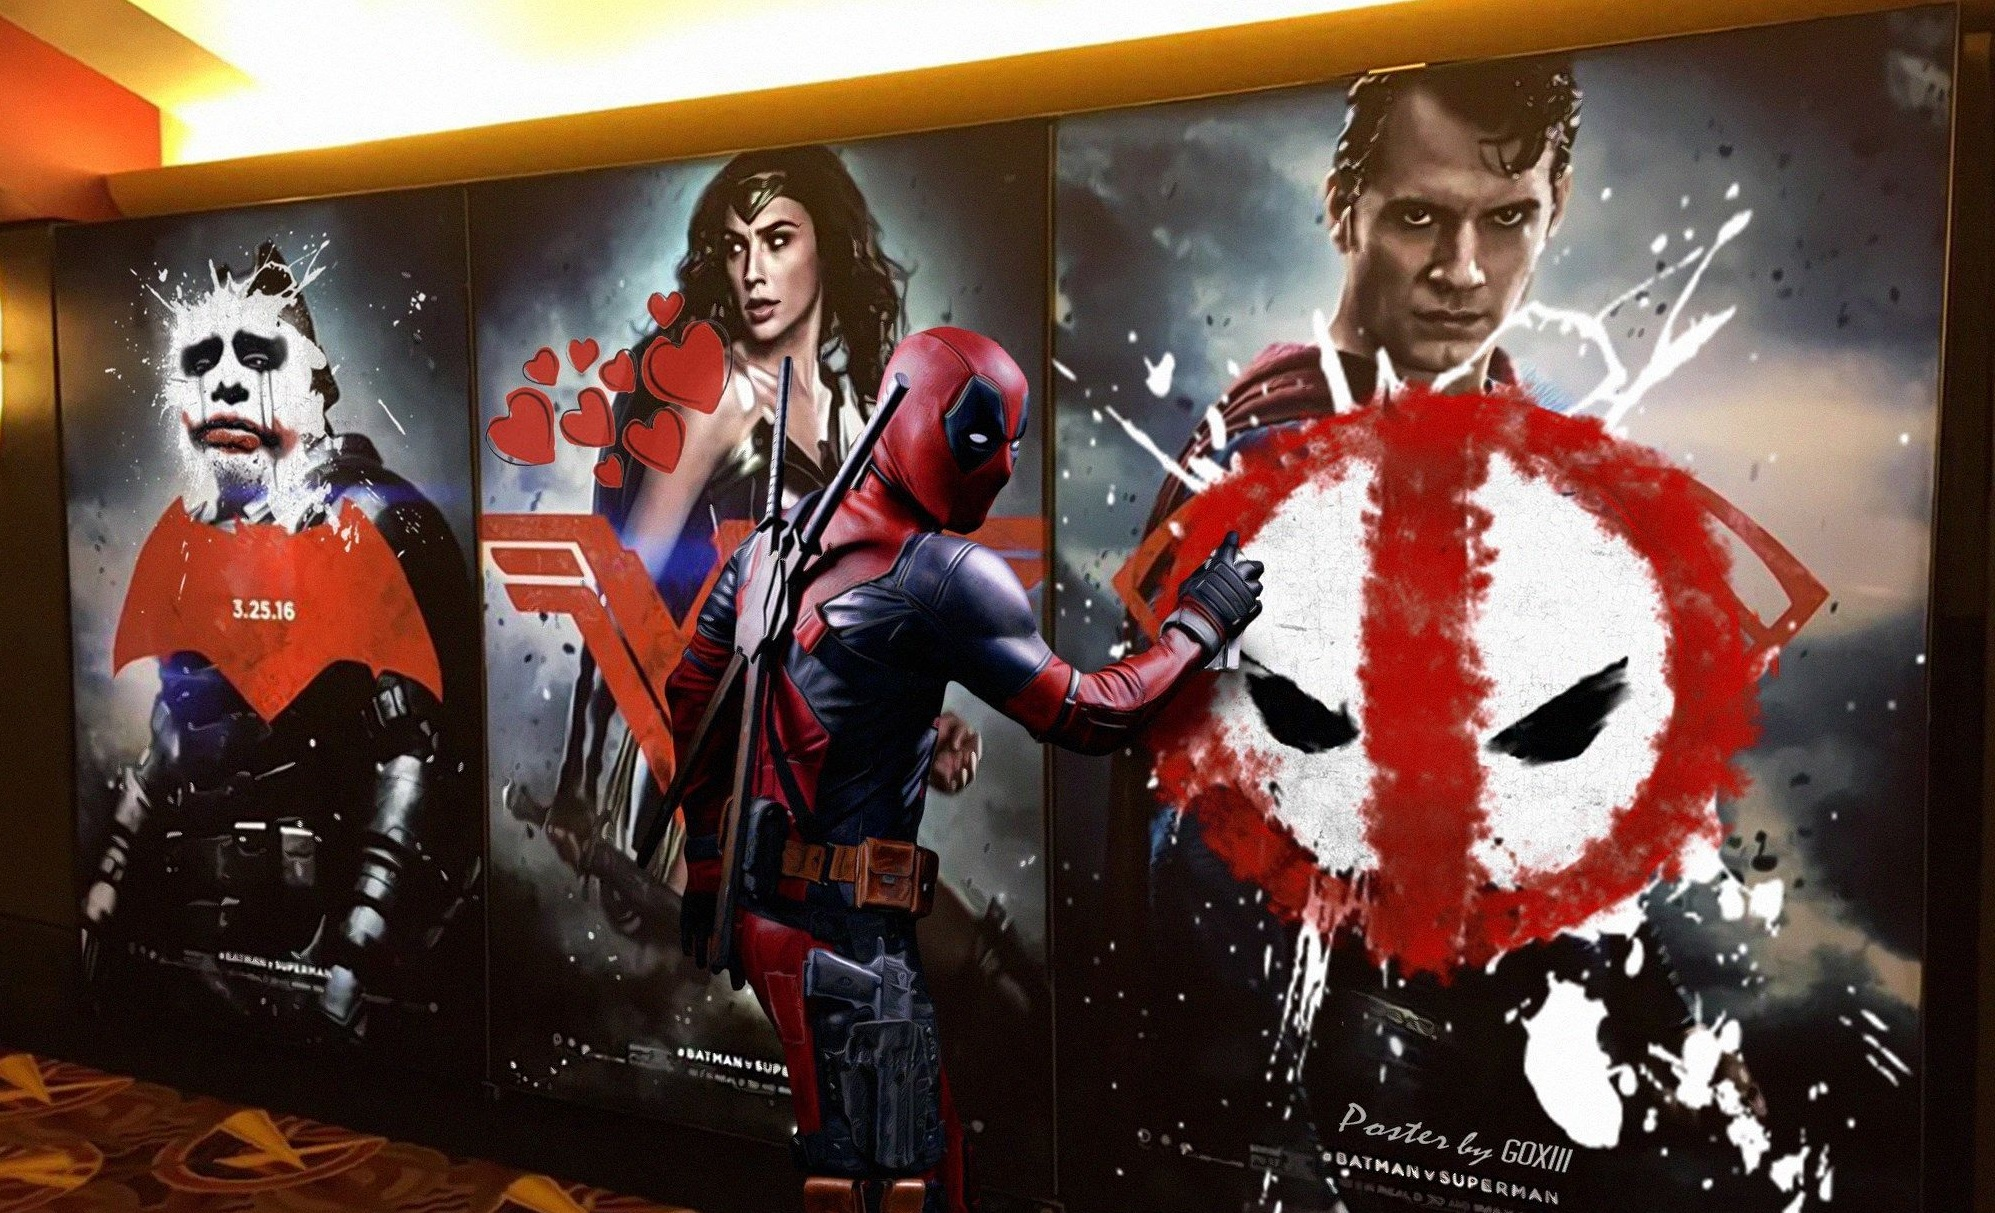 86517a6c-funny-deadpool-poster-just-recently-seen-two-months-later-it.jpg